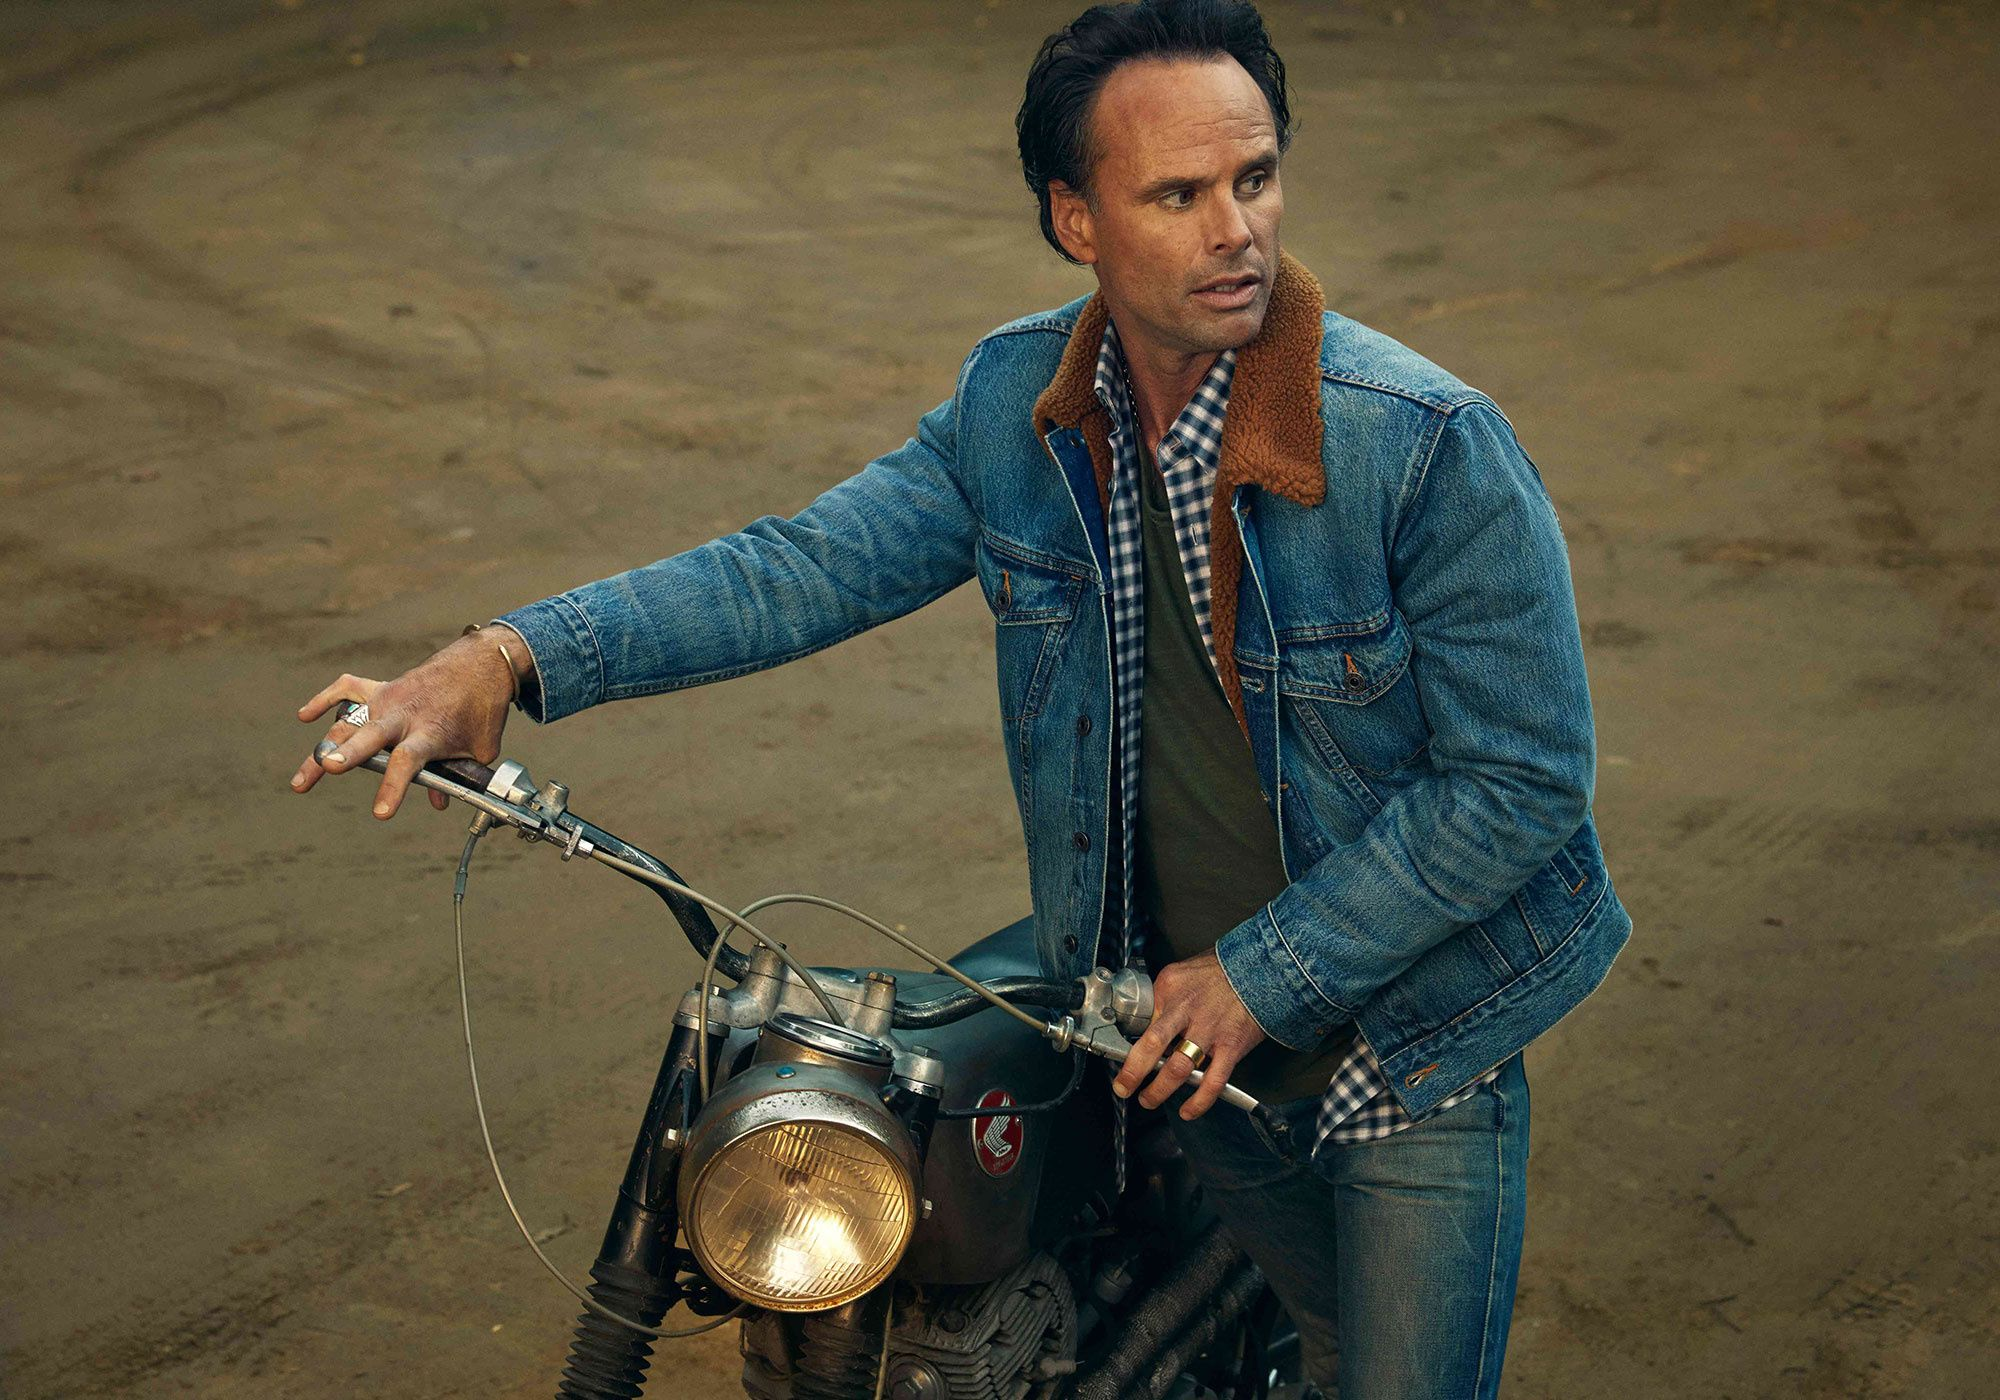 Walton Goggins wearing denim and riding a motorcycle.